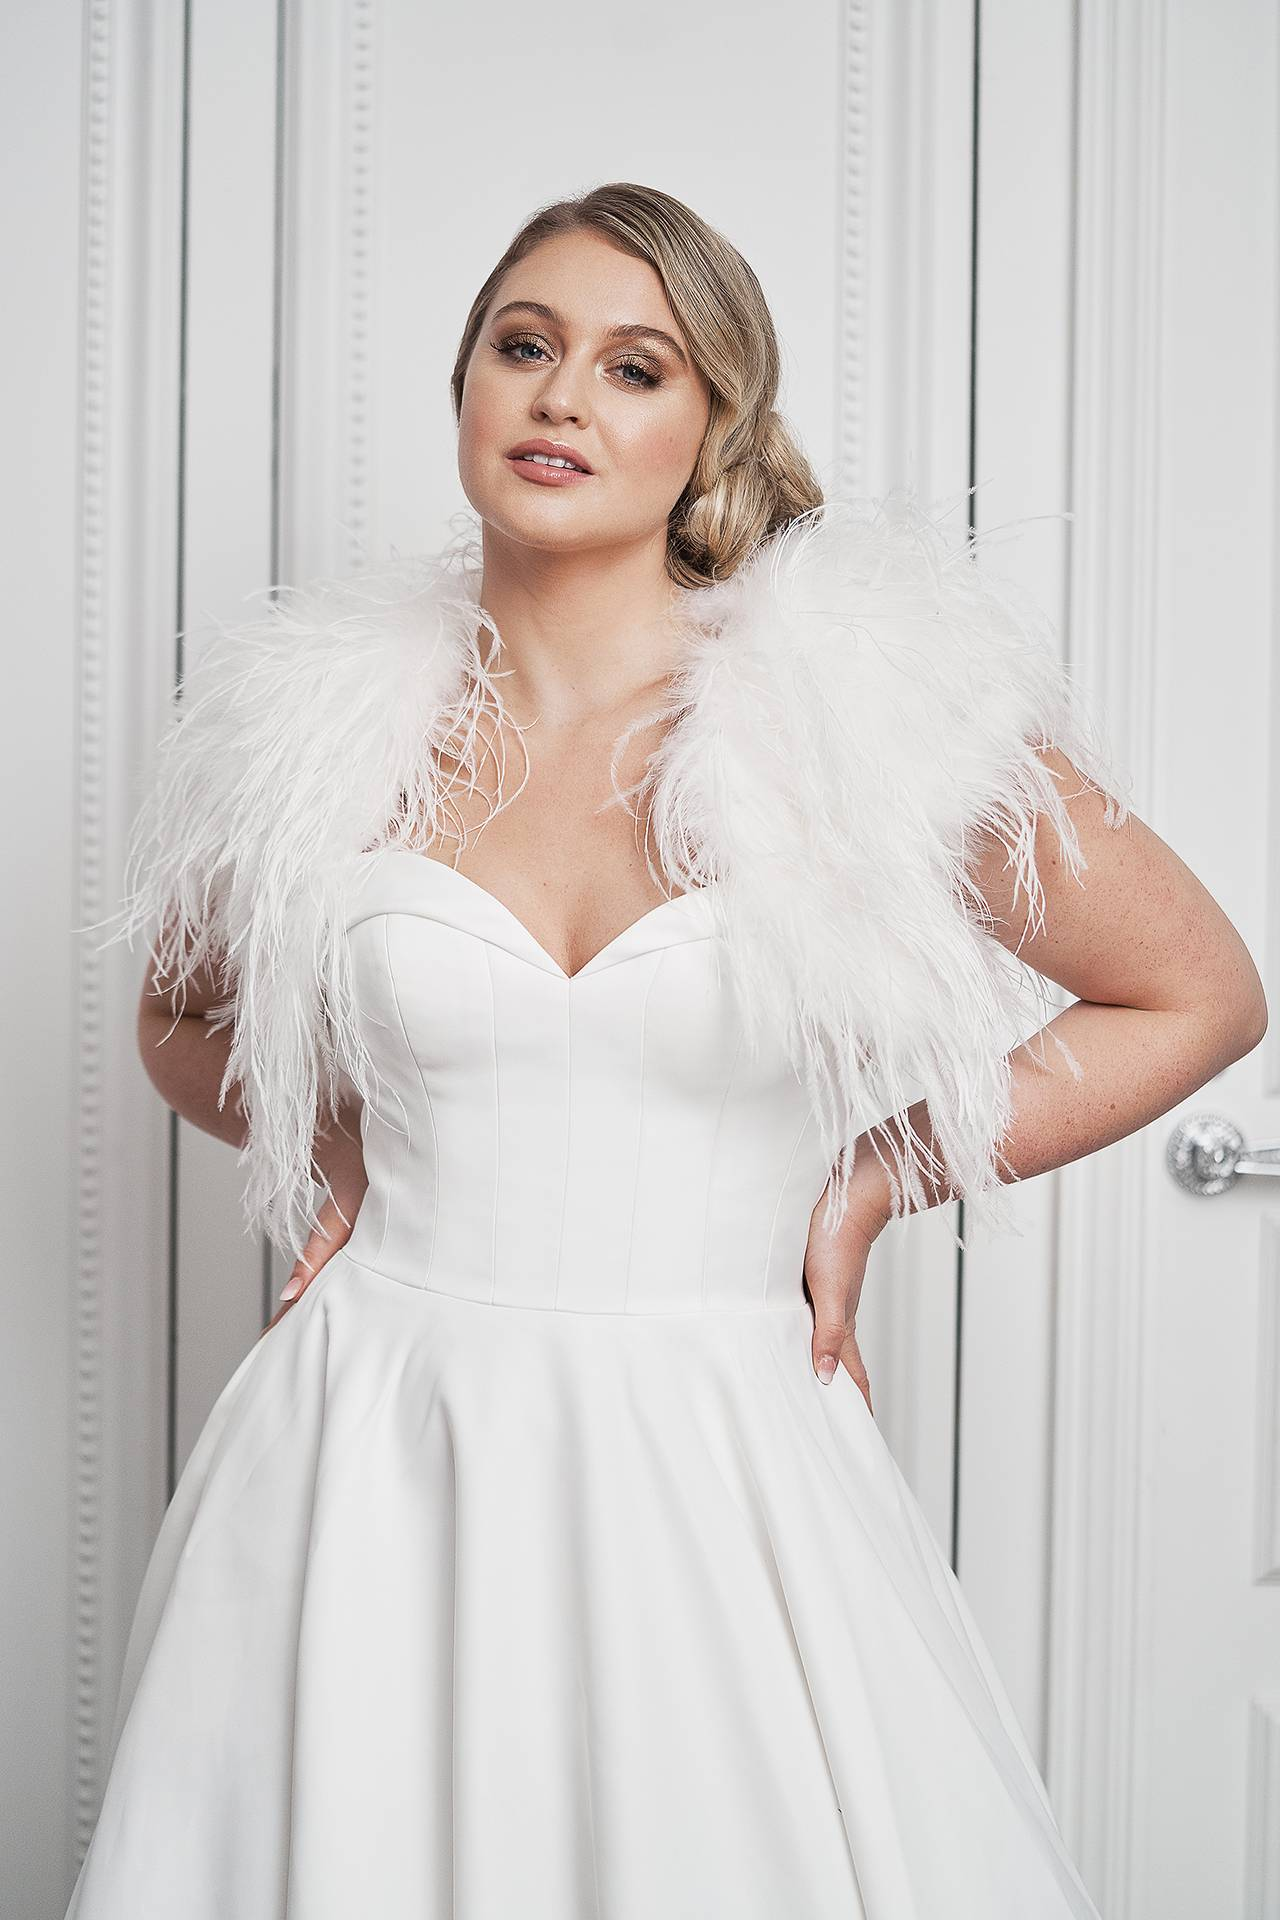 Iskra Lawrence Stars In Stunning New Bridal Campaign | Glamour UK